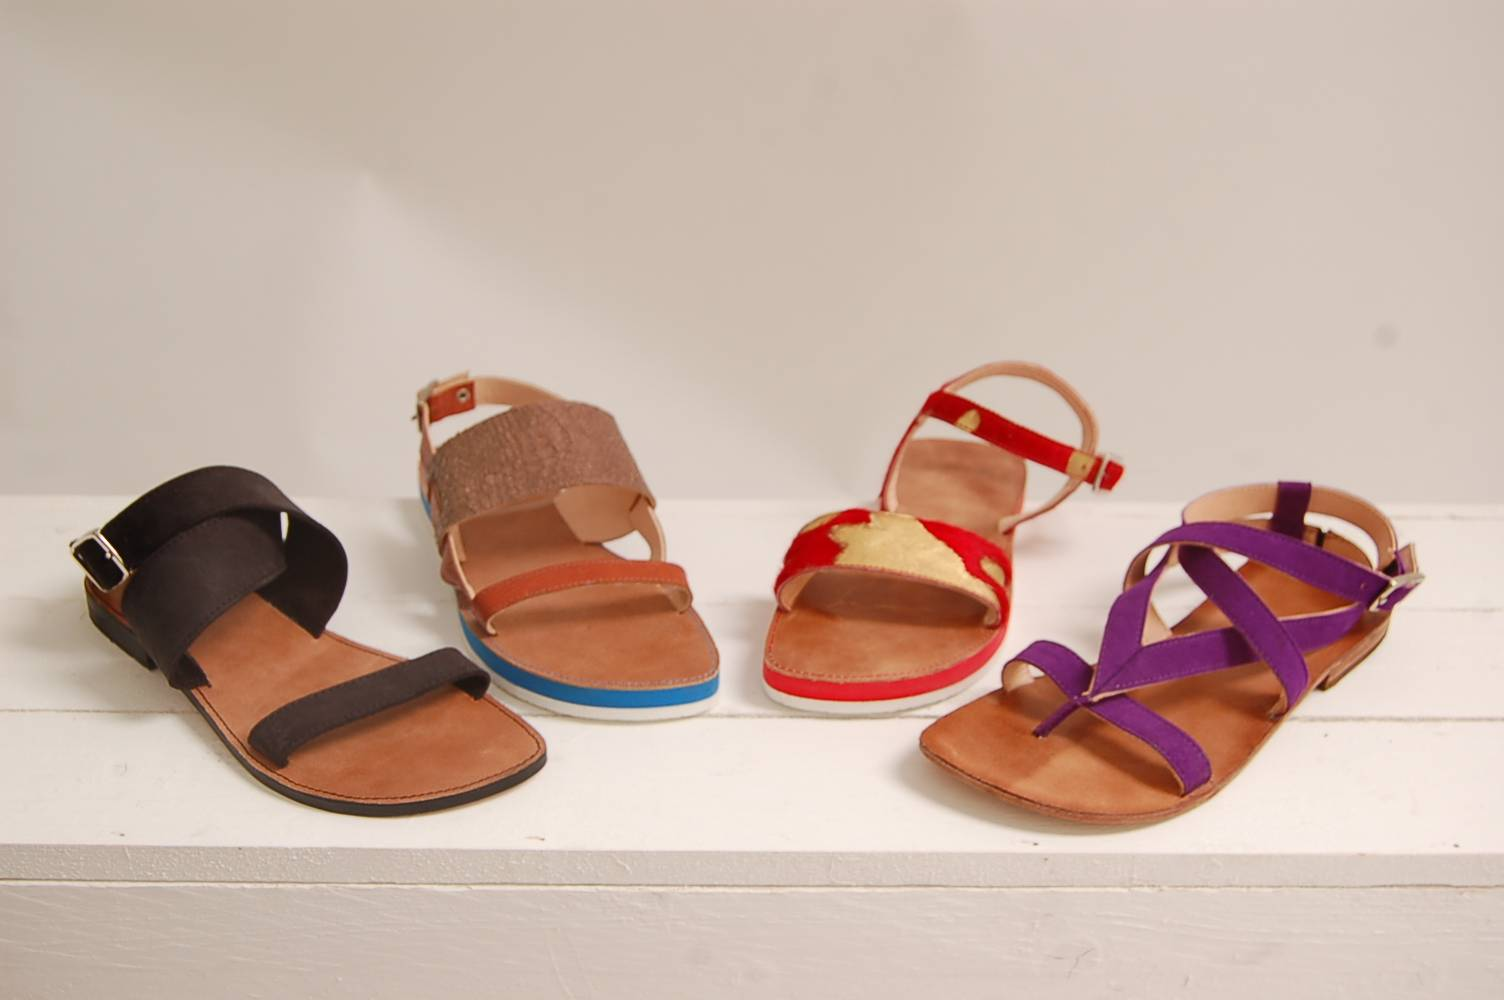 Making sandals in three days